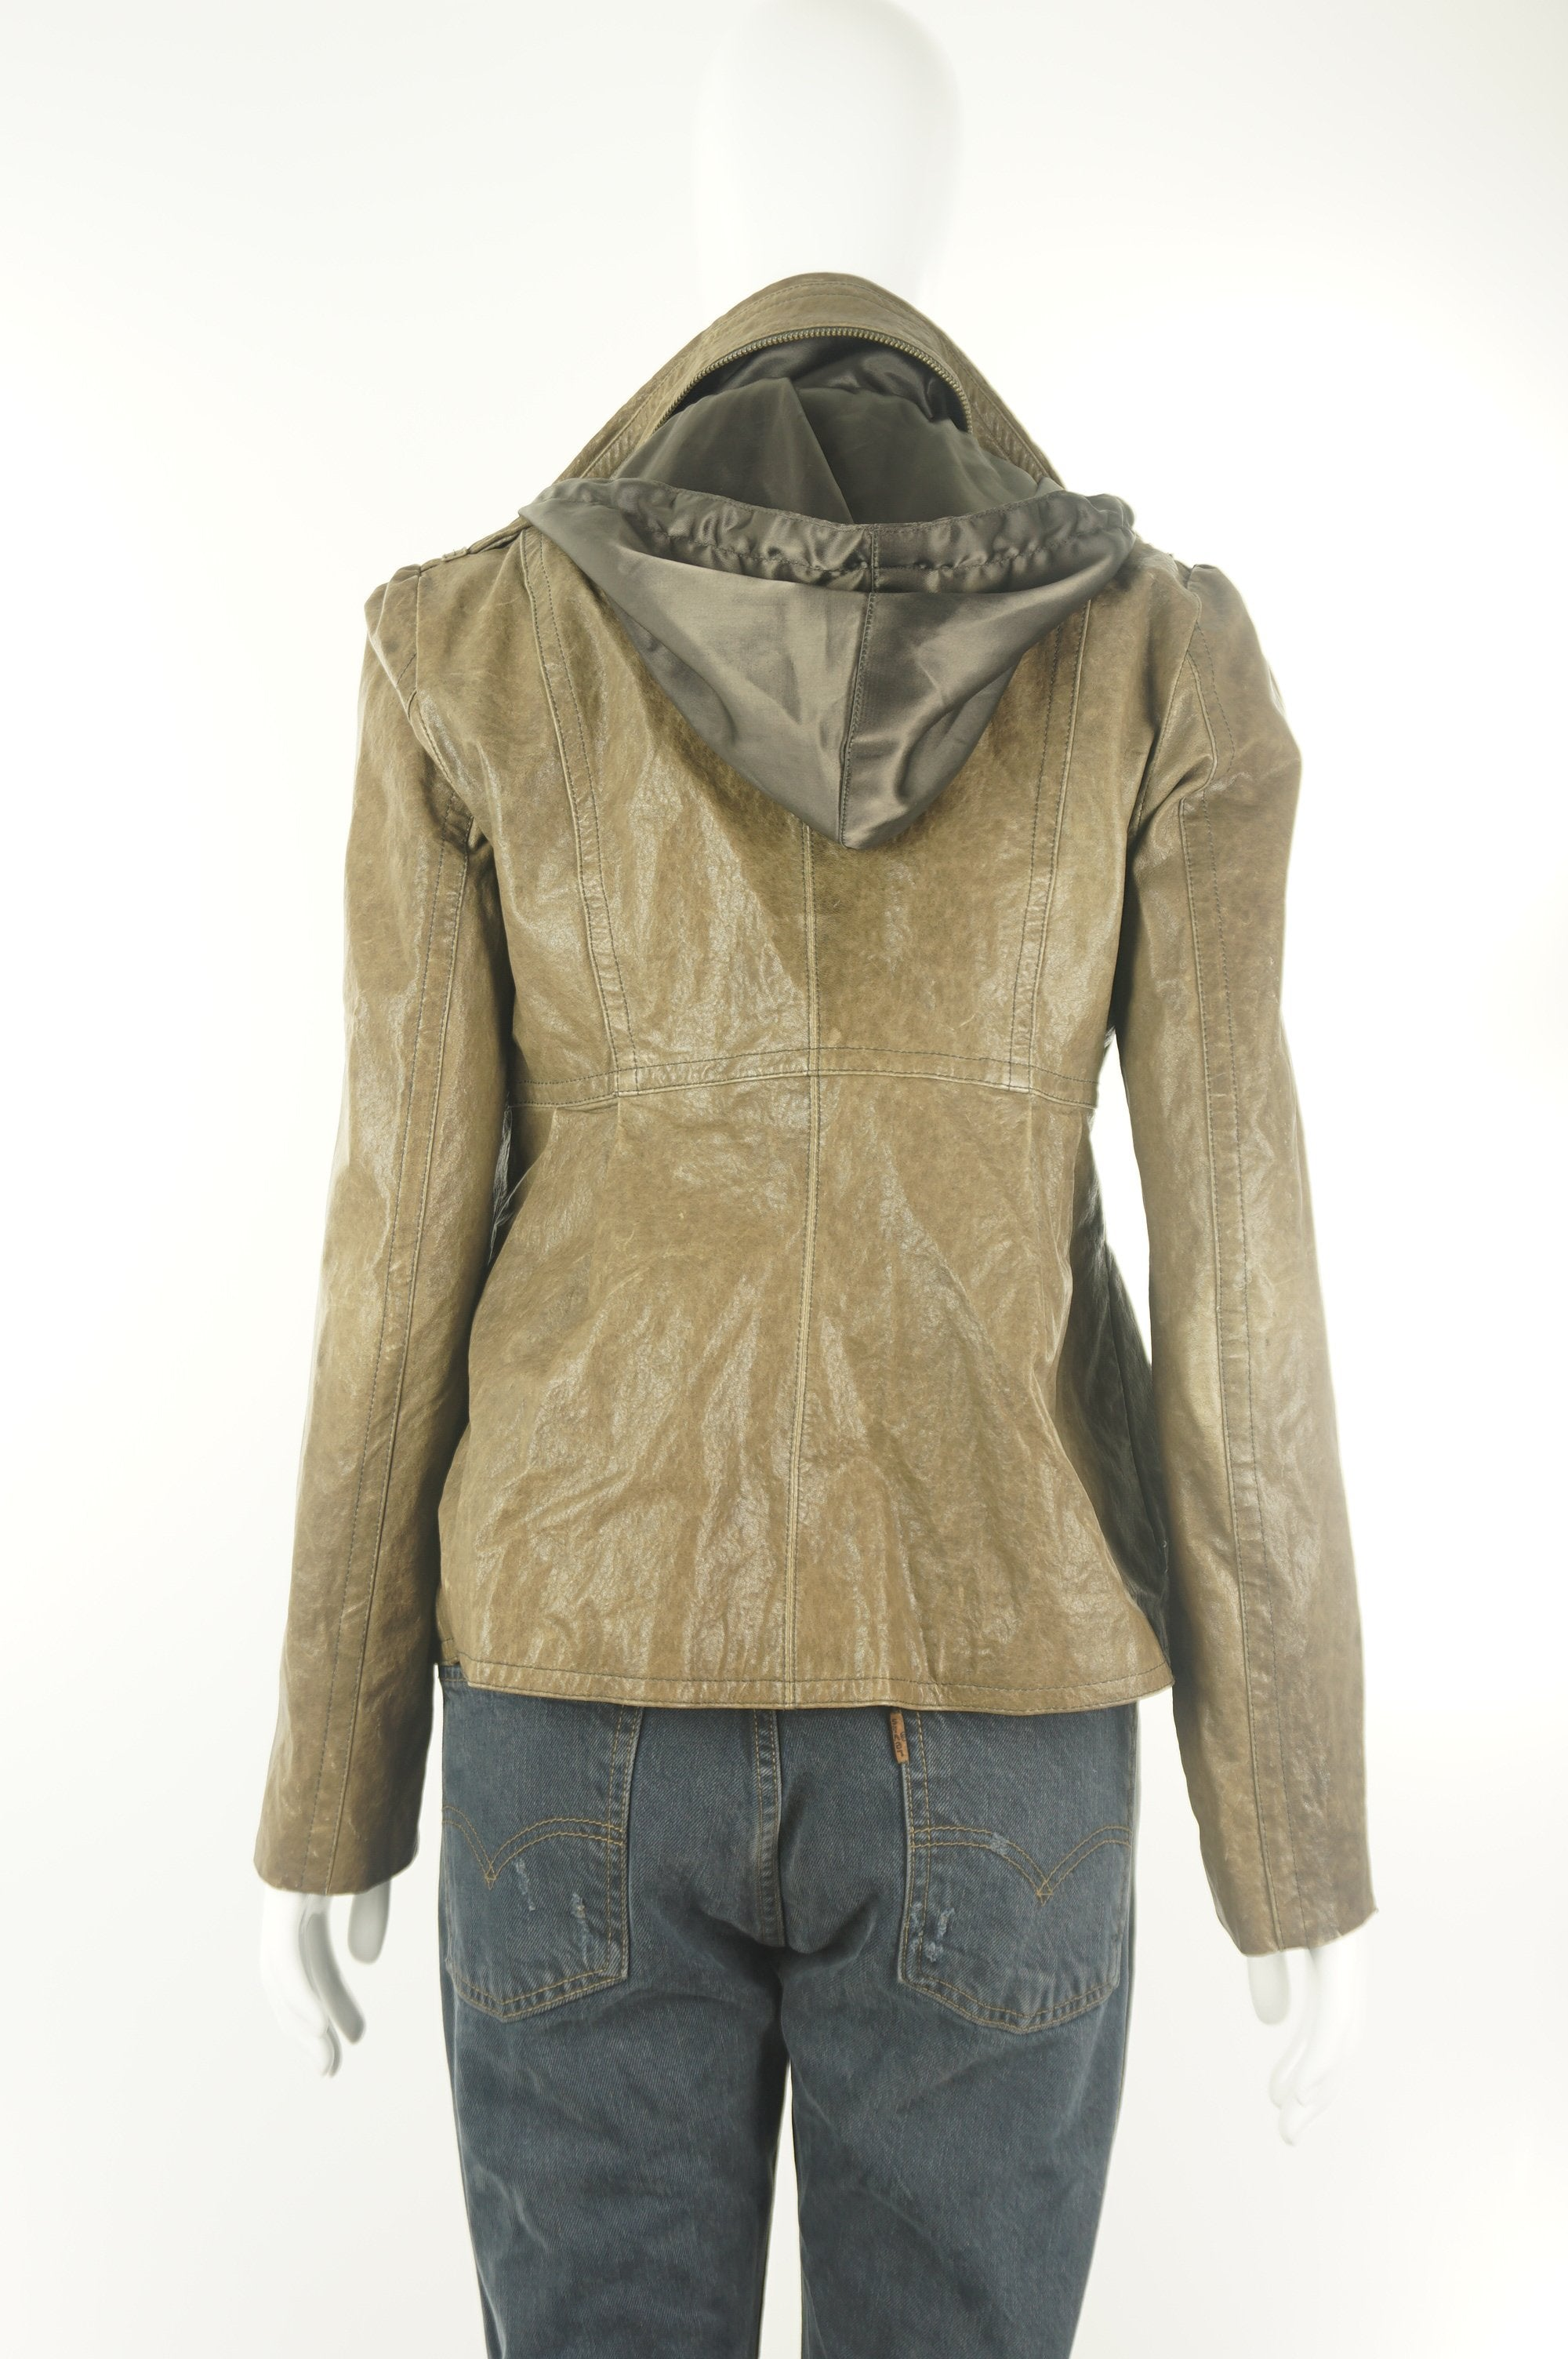 Mackage Leather Jacket, Rustic looking Mackage Faux leather jacket., Brown, Exterior: 84% cotton, 14% polyurethane,